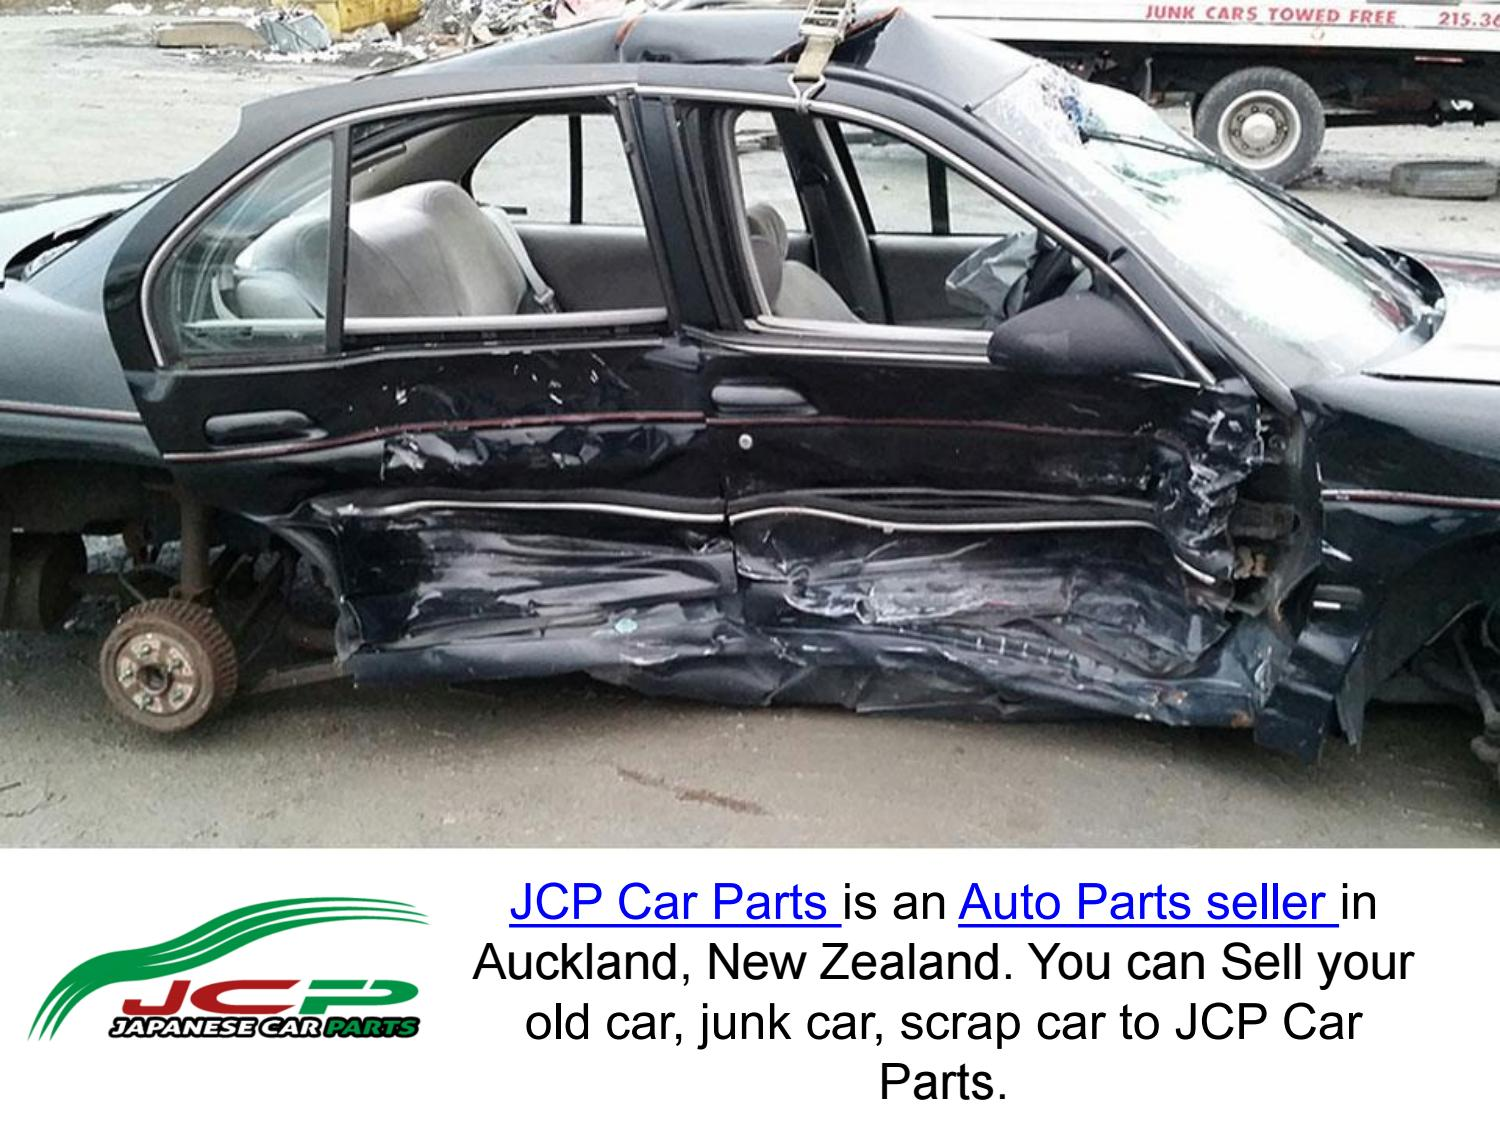 Old Junk Cars For Sale >> Junk Cars For Sale Easy Way To Save Of Money By